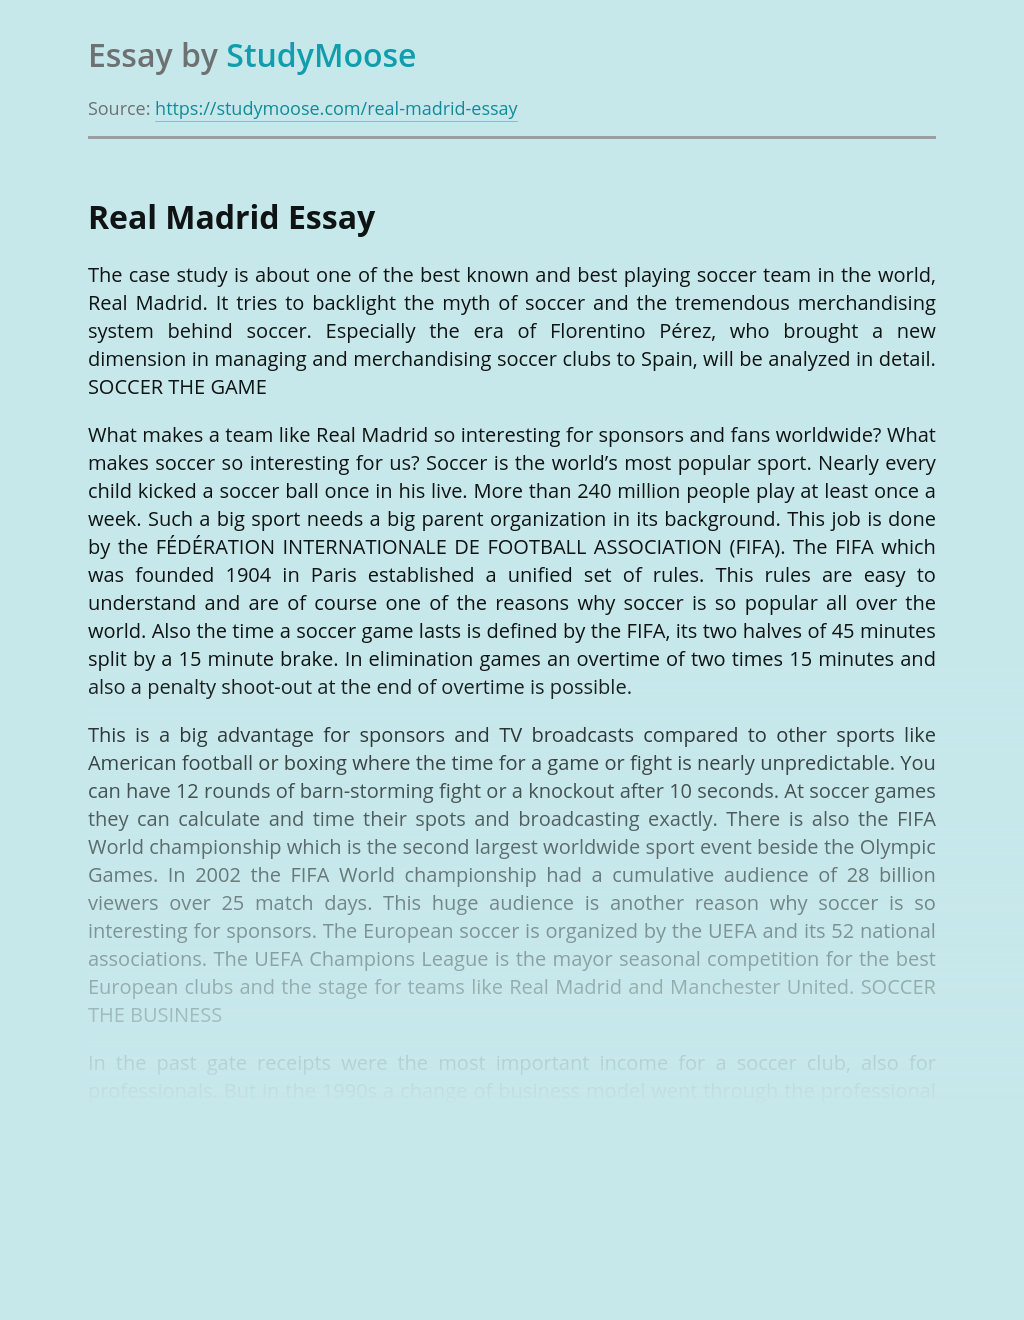 Real Madrid in Football History